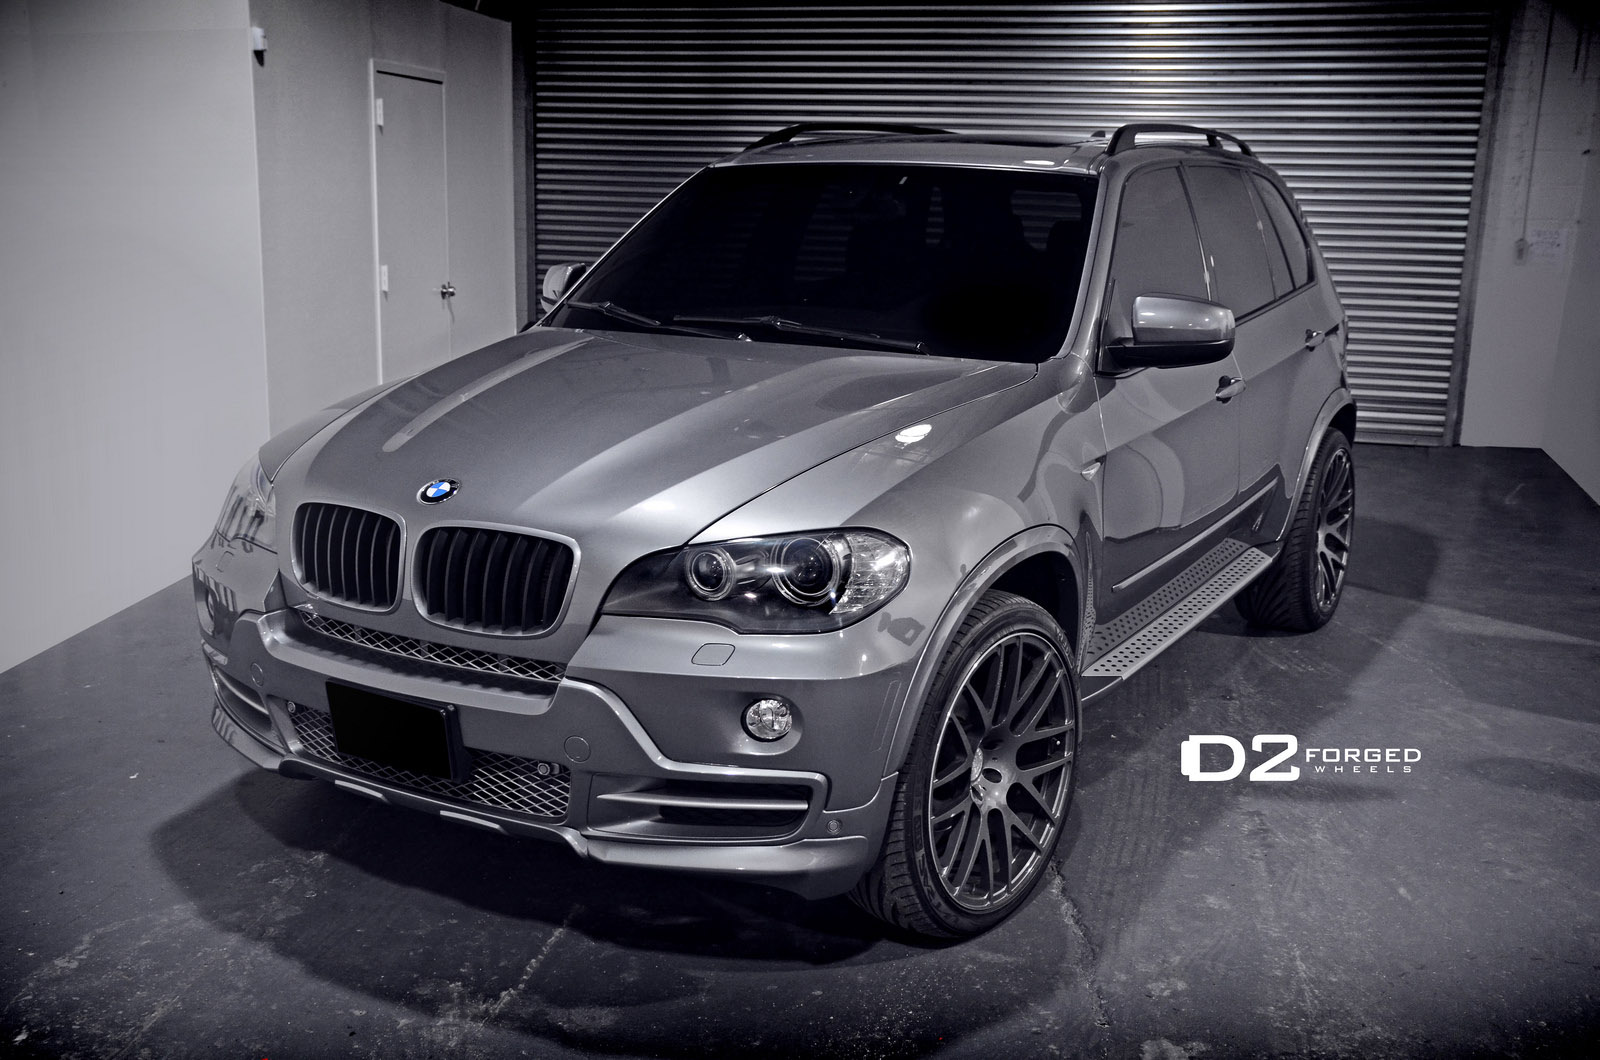 D2forged Updates Bmw X5